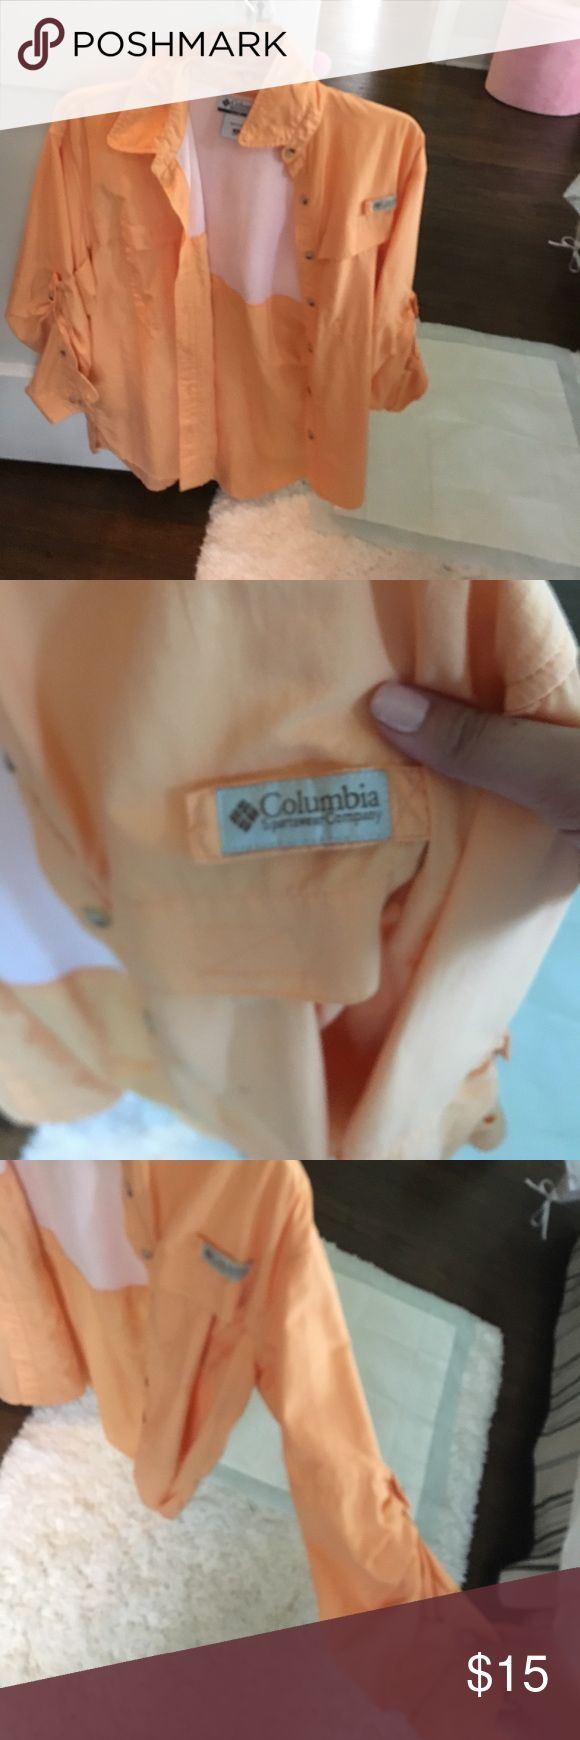 pfg shirt!! super cute and comfortable as a bathing suit cover up!! Columbia Skirts